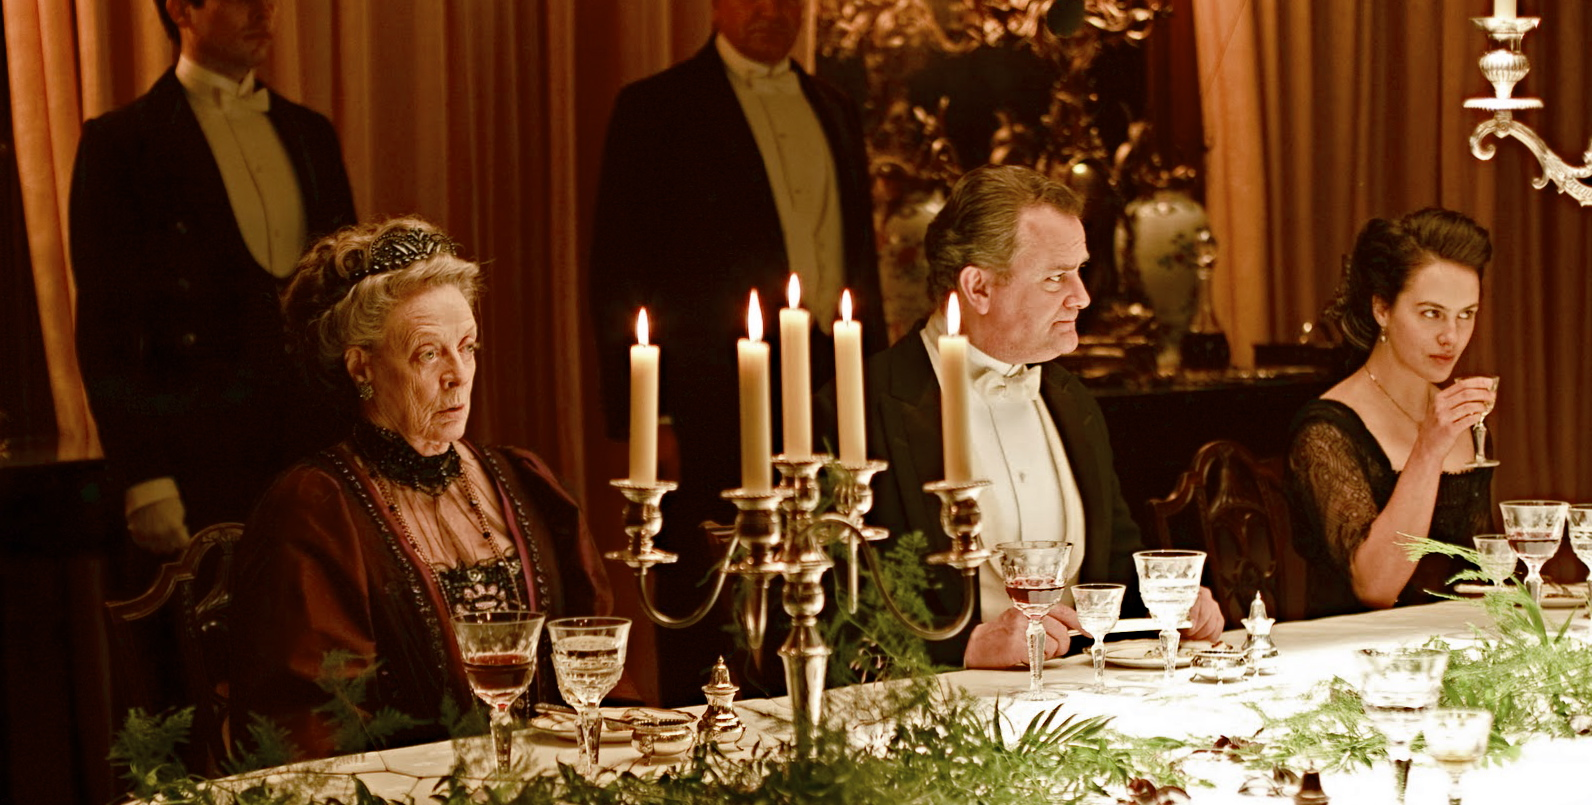 Just another Downton dinner